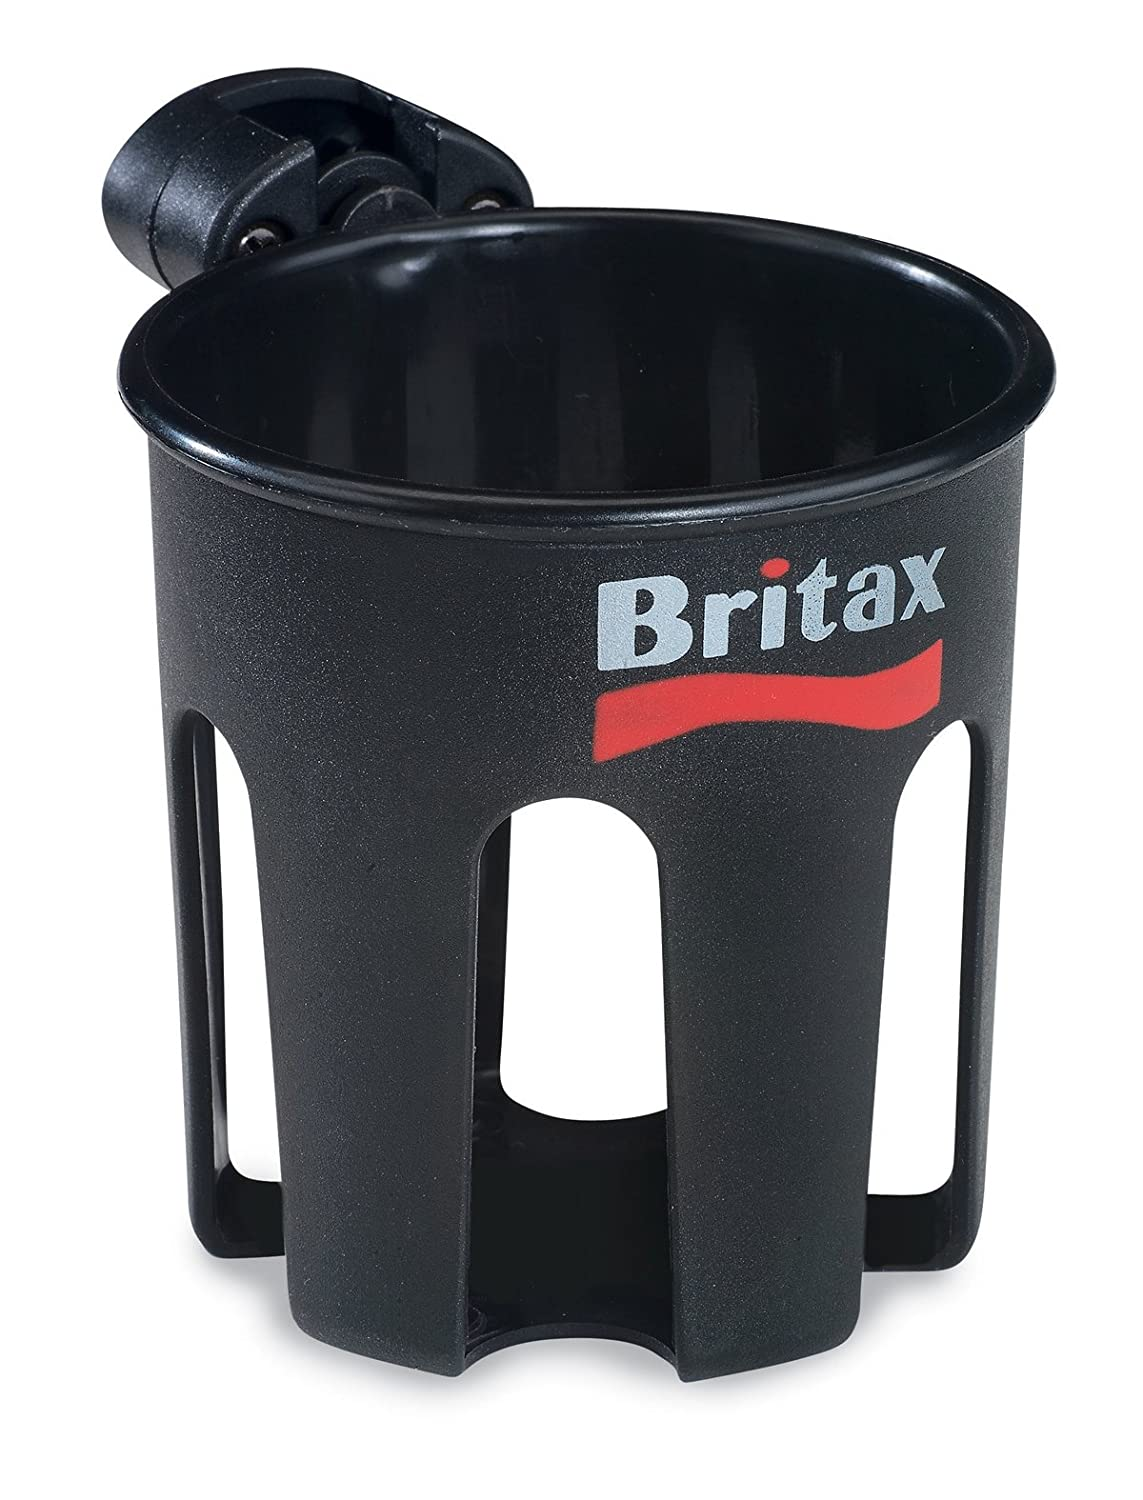 Adult Cup Holder for Britax Single and Double B-Agile Strollers S857000